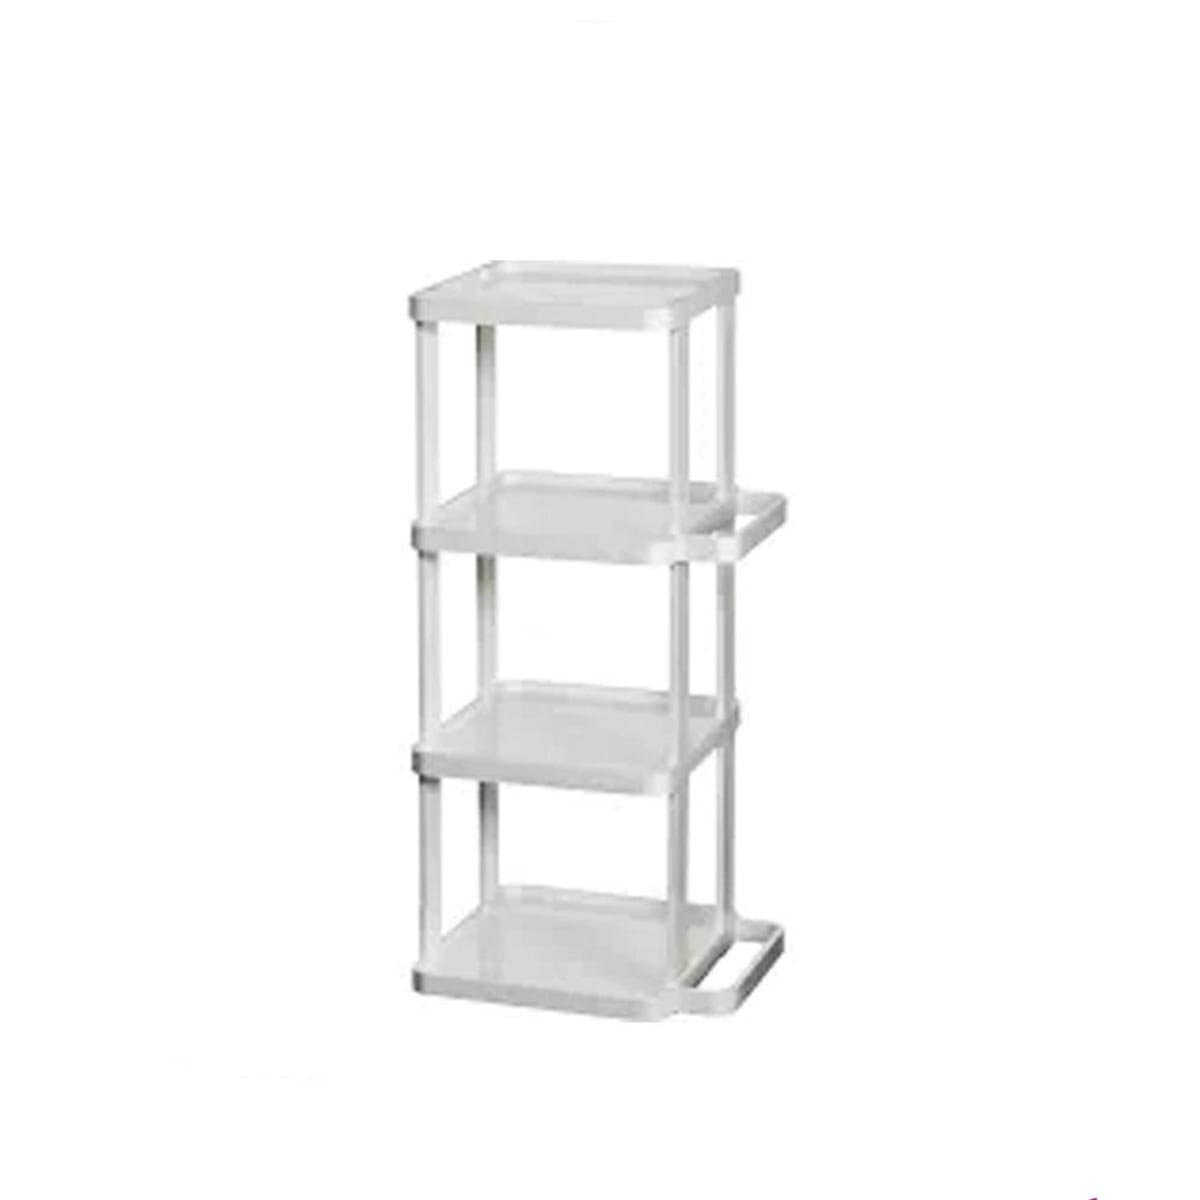 Japanese Plastic Shoe Rack 4 Tier White